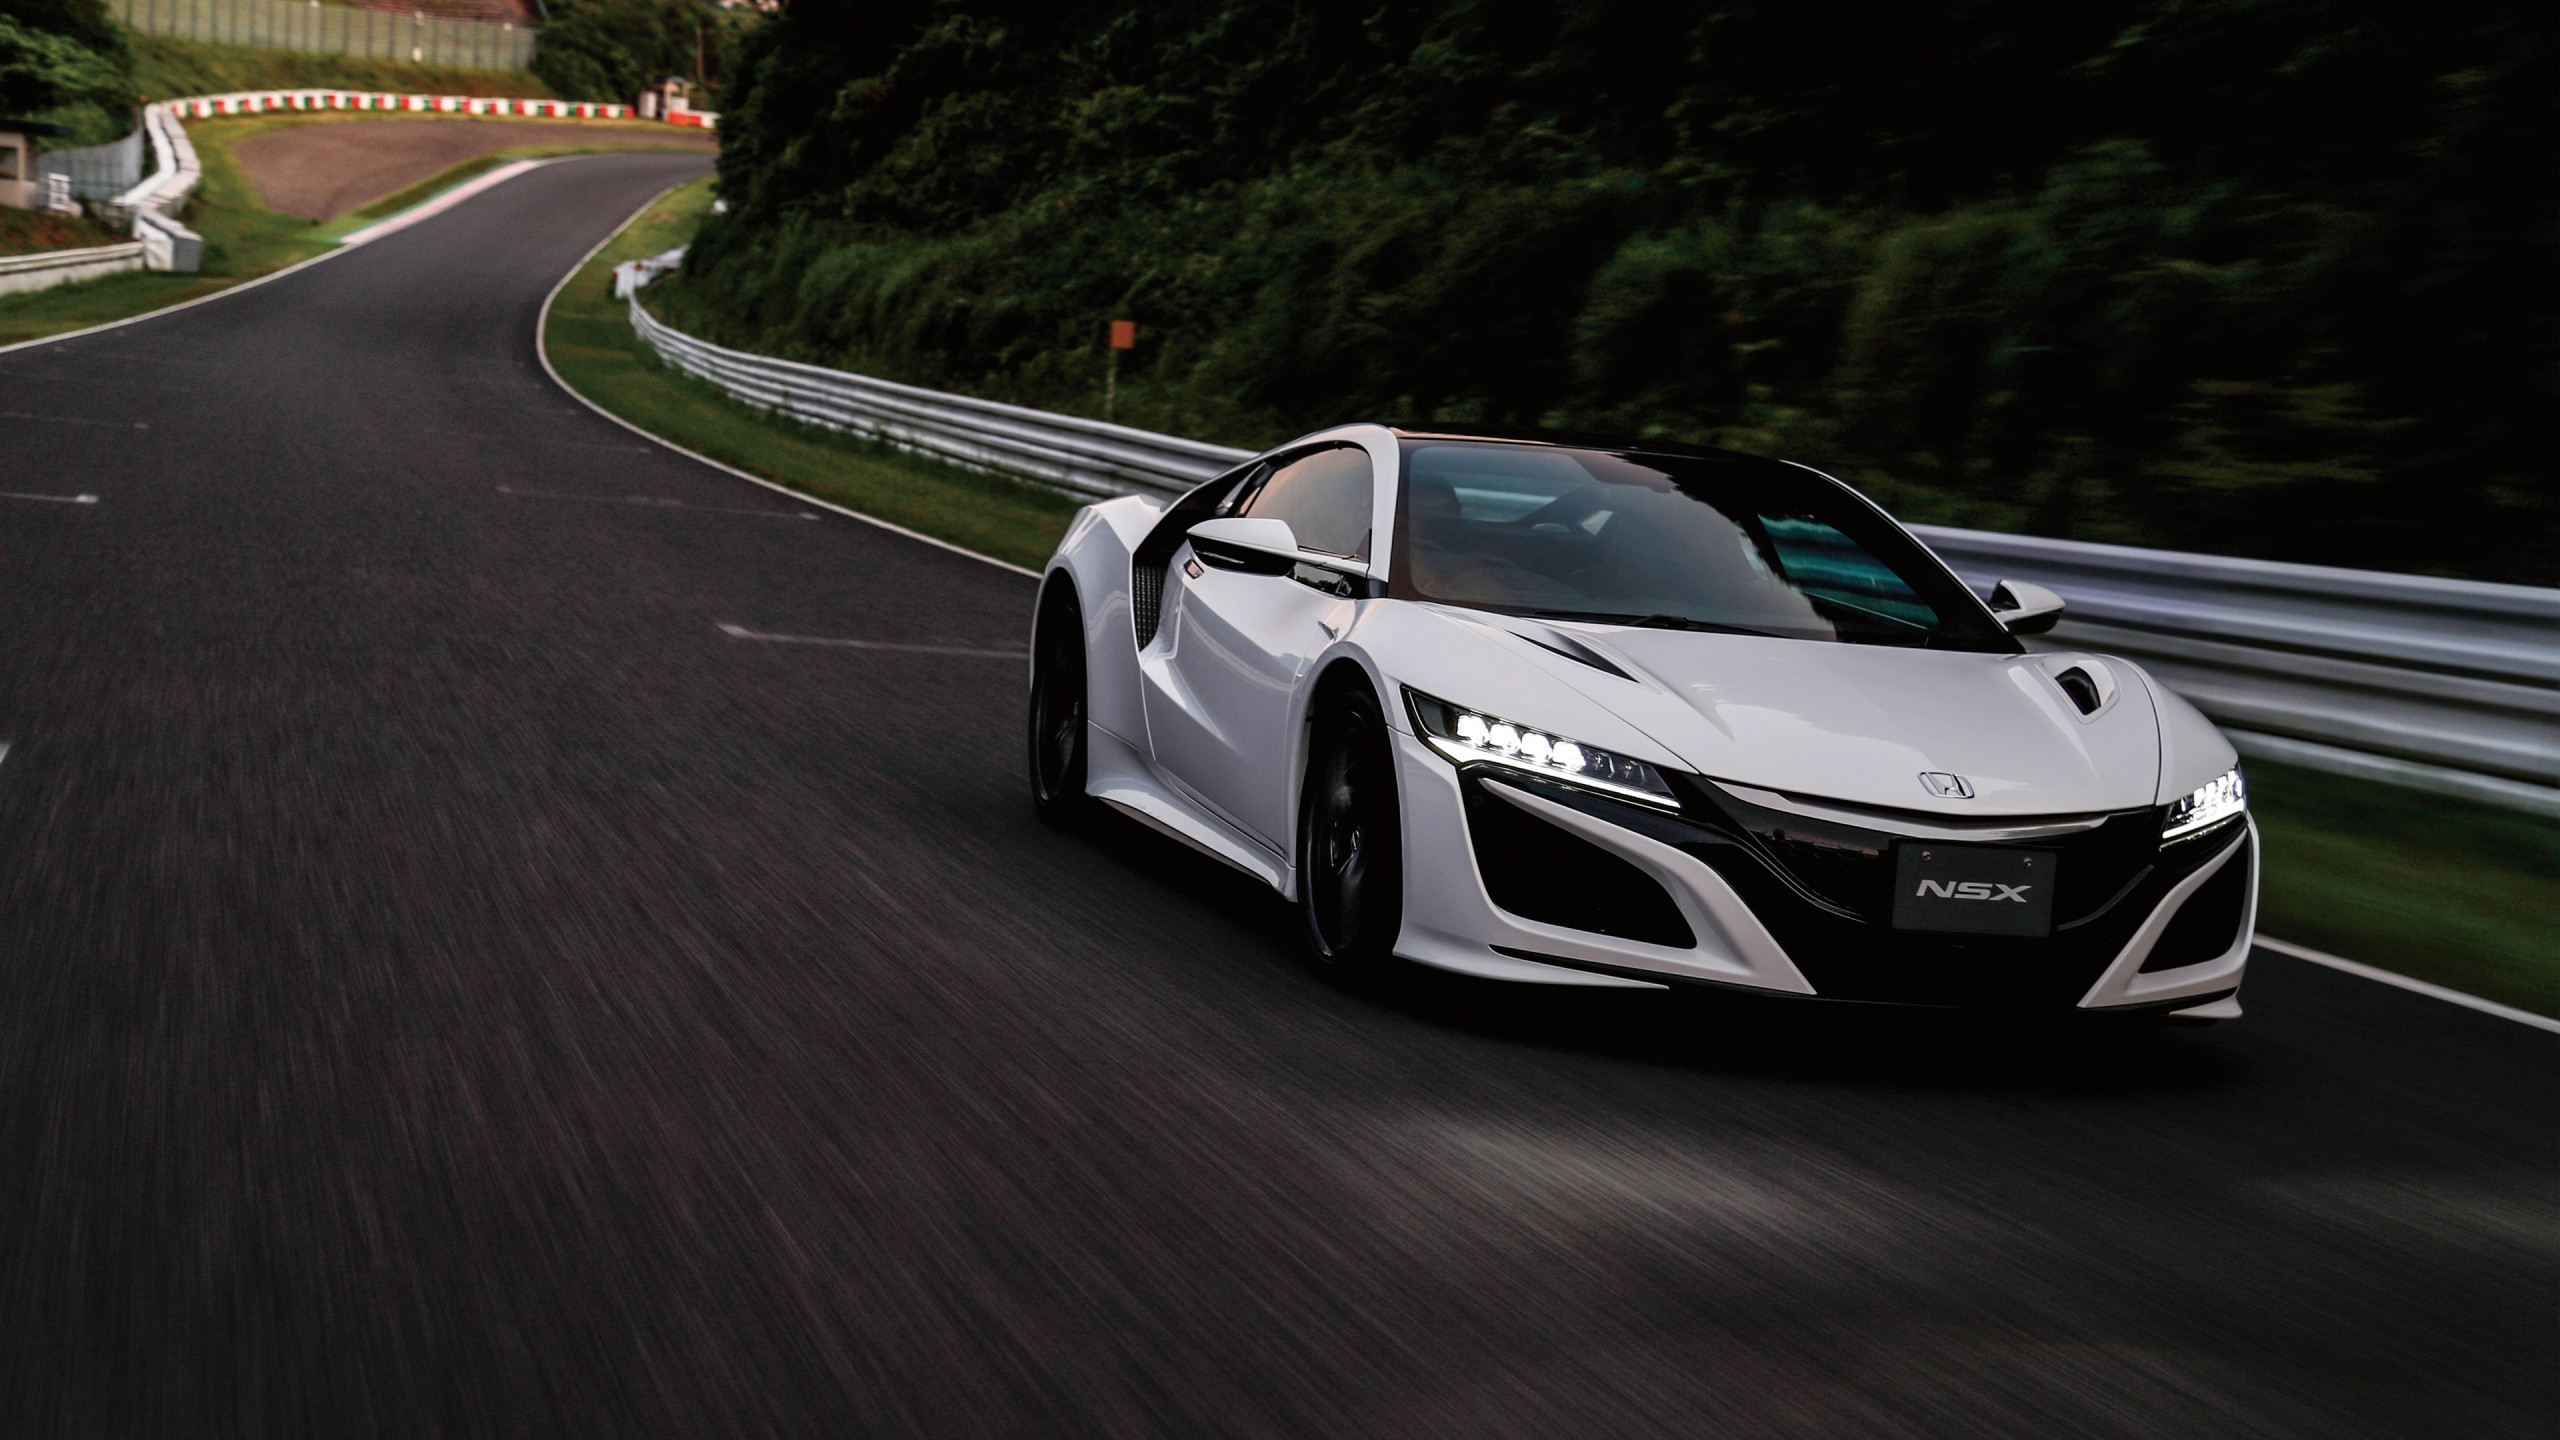 Honda Nsx 4k Supercar Wallpaper Hd Car Wallpapers Id 6985